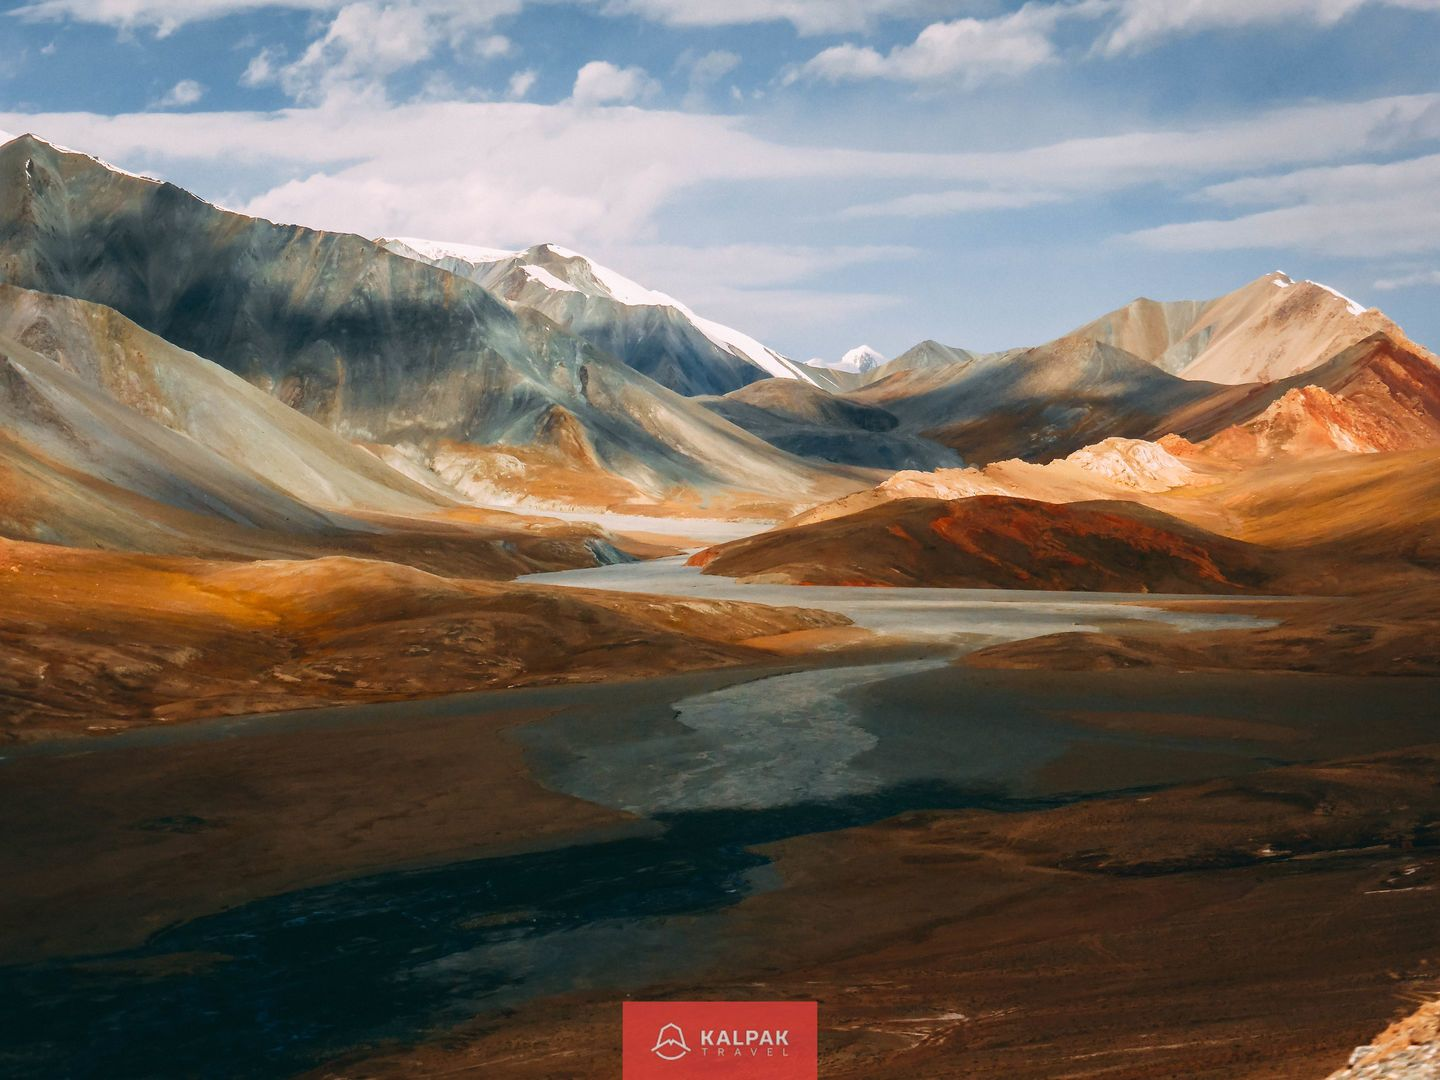 Pamir best time to go